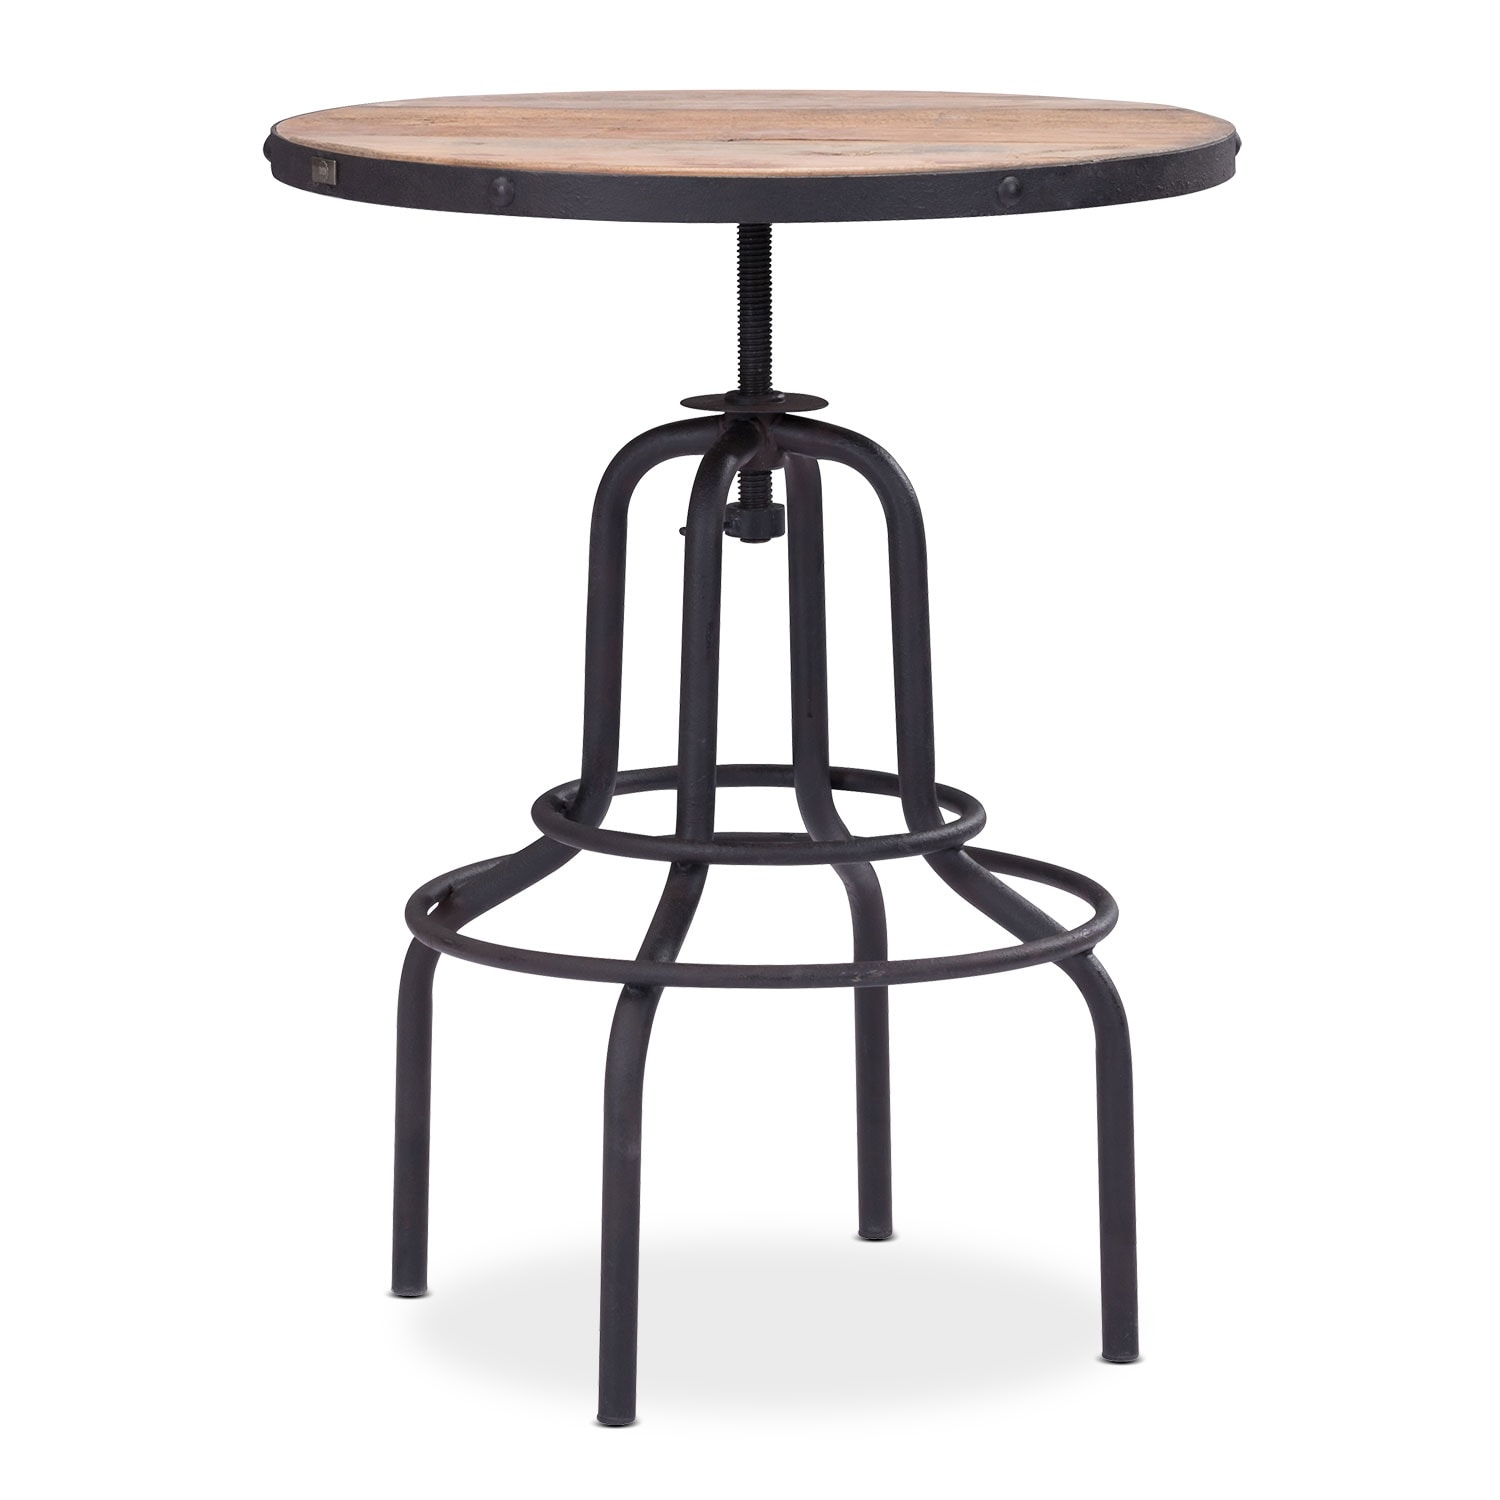 Elston Adjustable Table - Antiqued Black